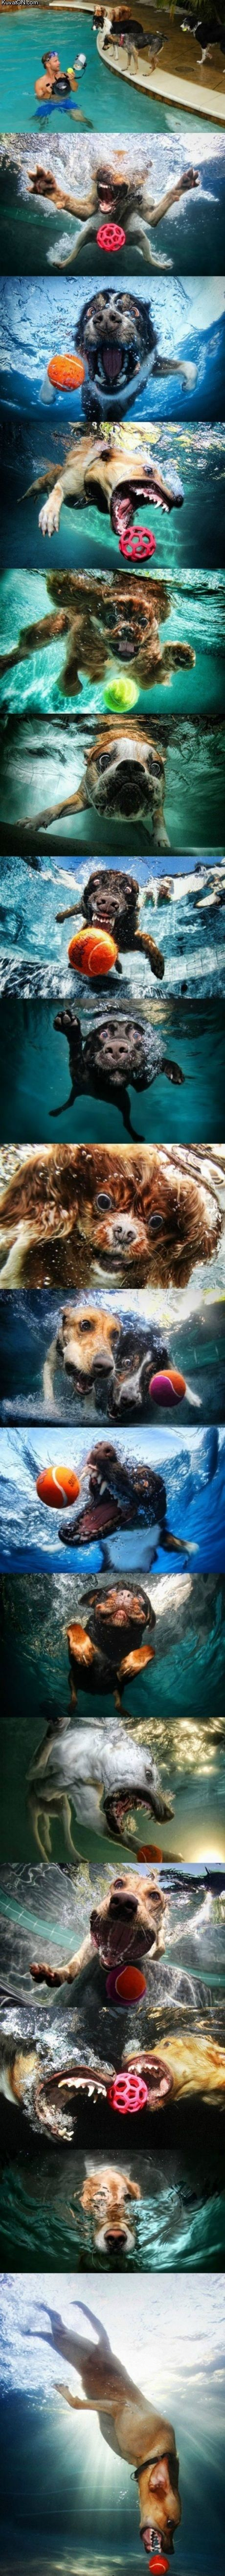 Dog pics with an underwater camera: Dogs Pics, Funny Dogs, Funny Pictures, Dogs Photography, Underwater Dogs, Dogs Pictures, So Funny, Pools, Dogs Faces